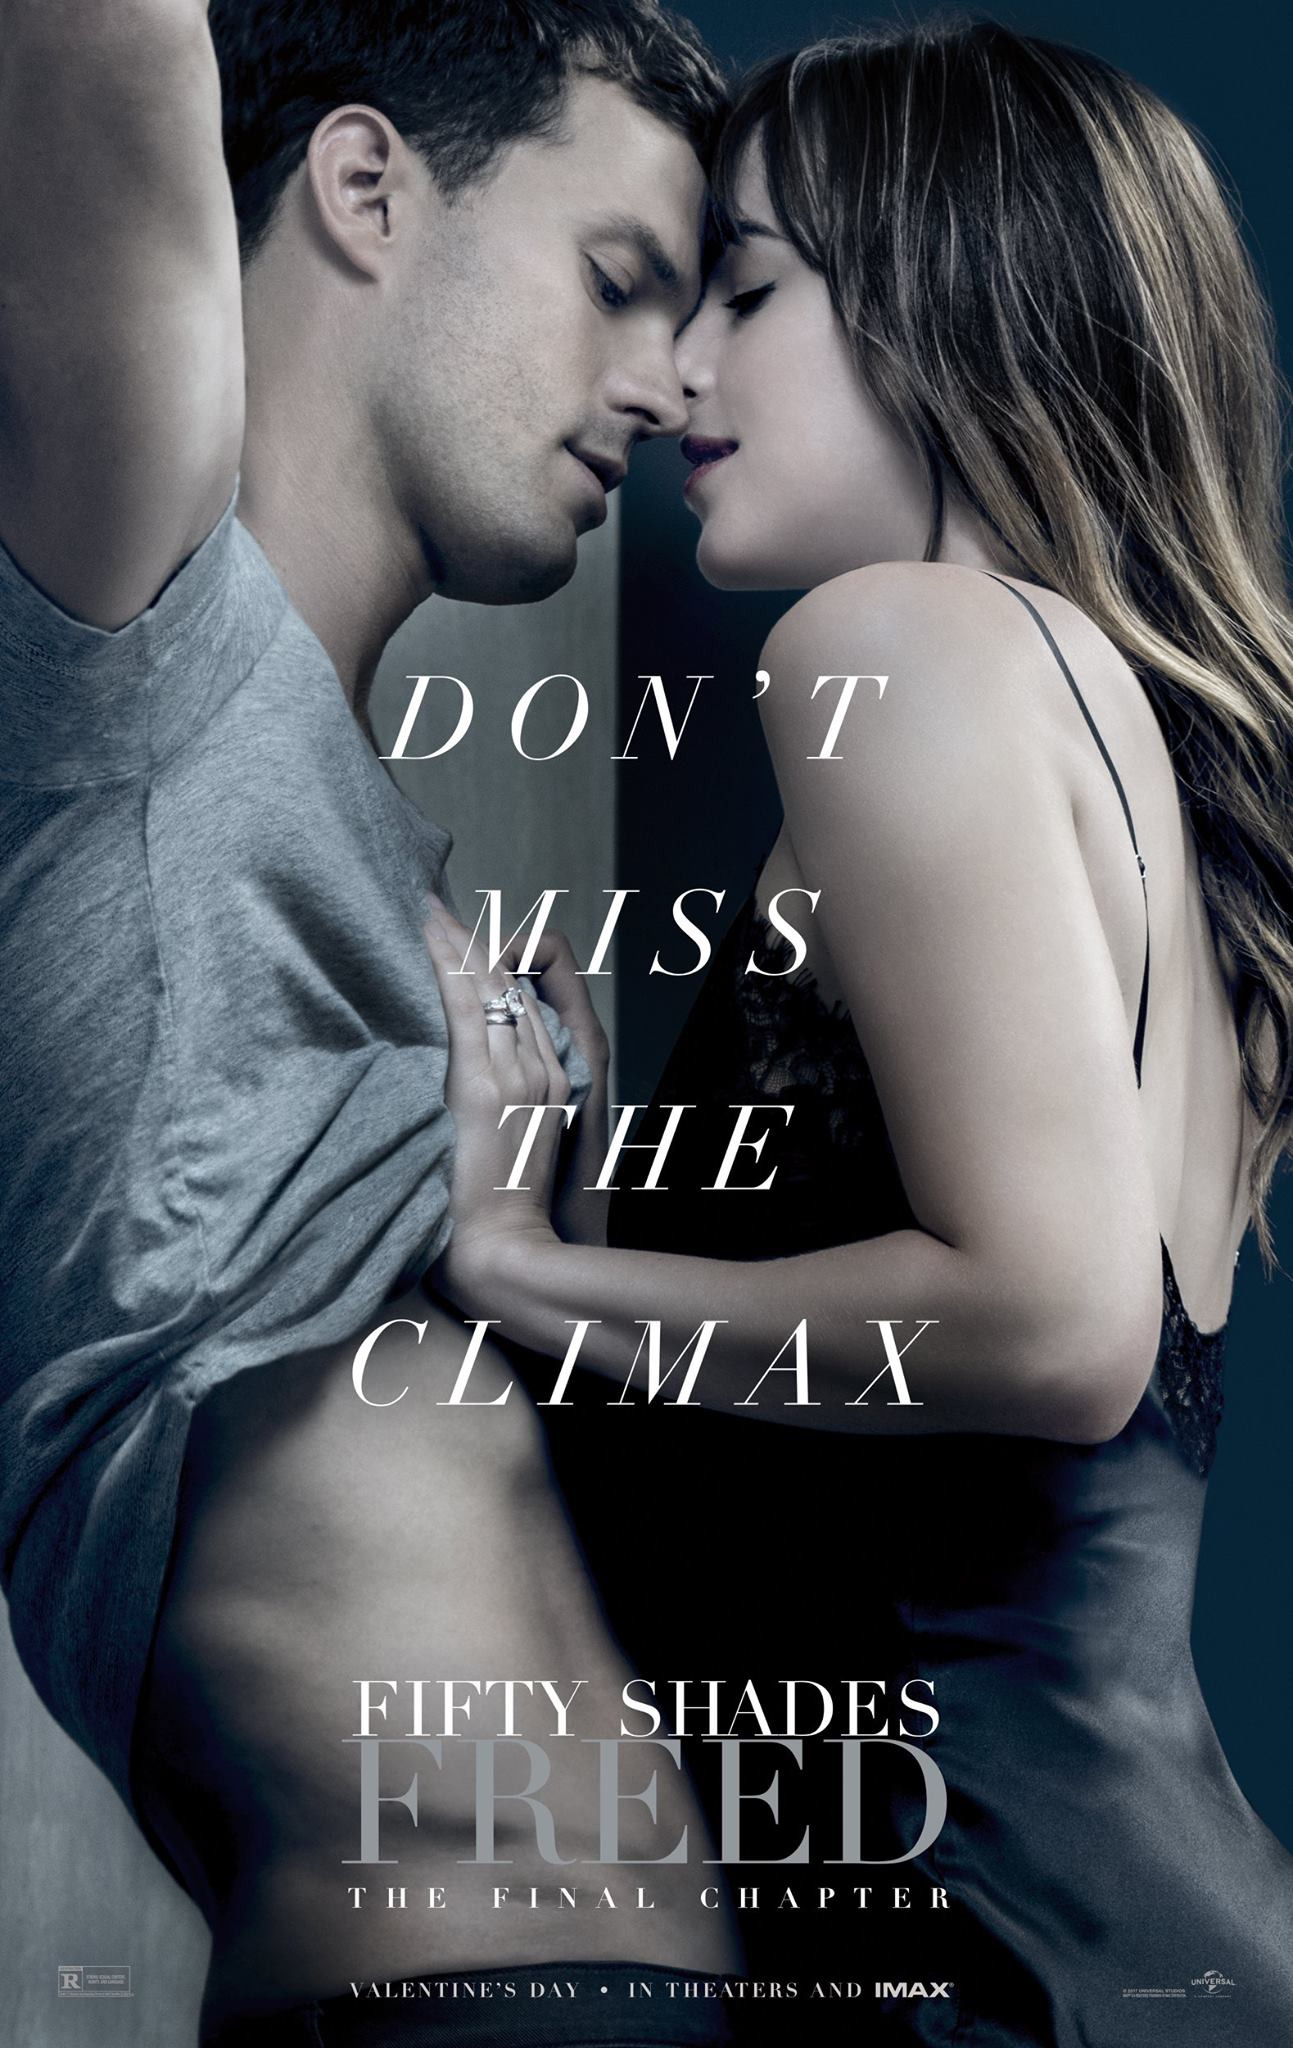 21 fifty shades free top 25 movie posters of 2018